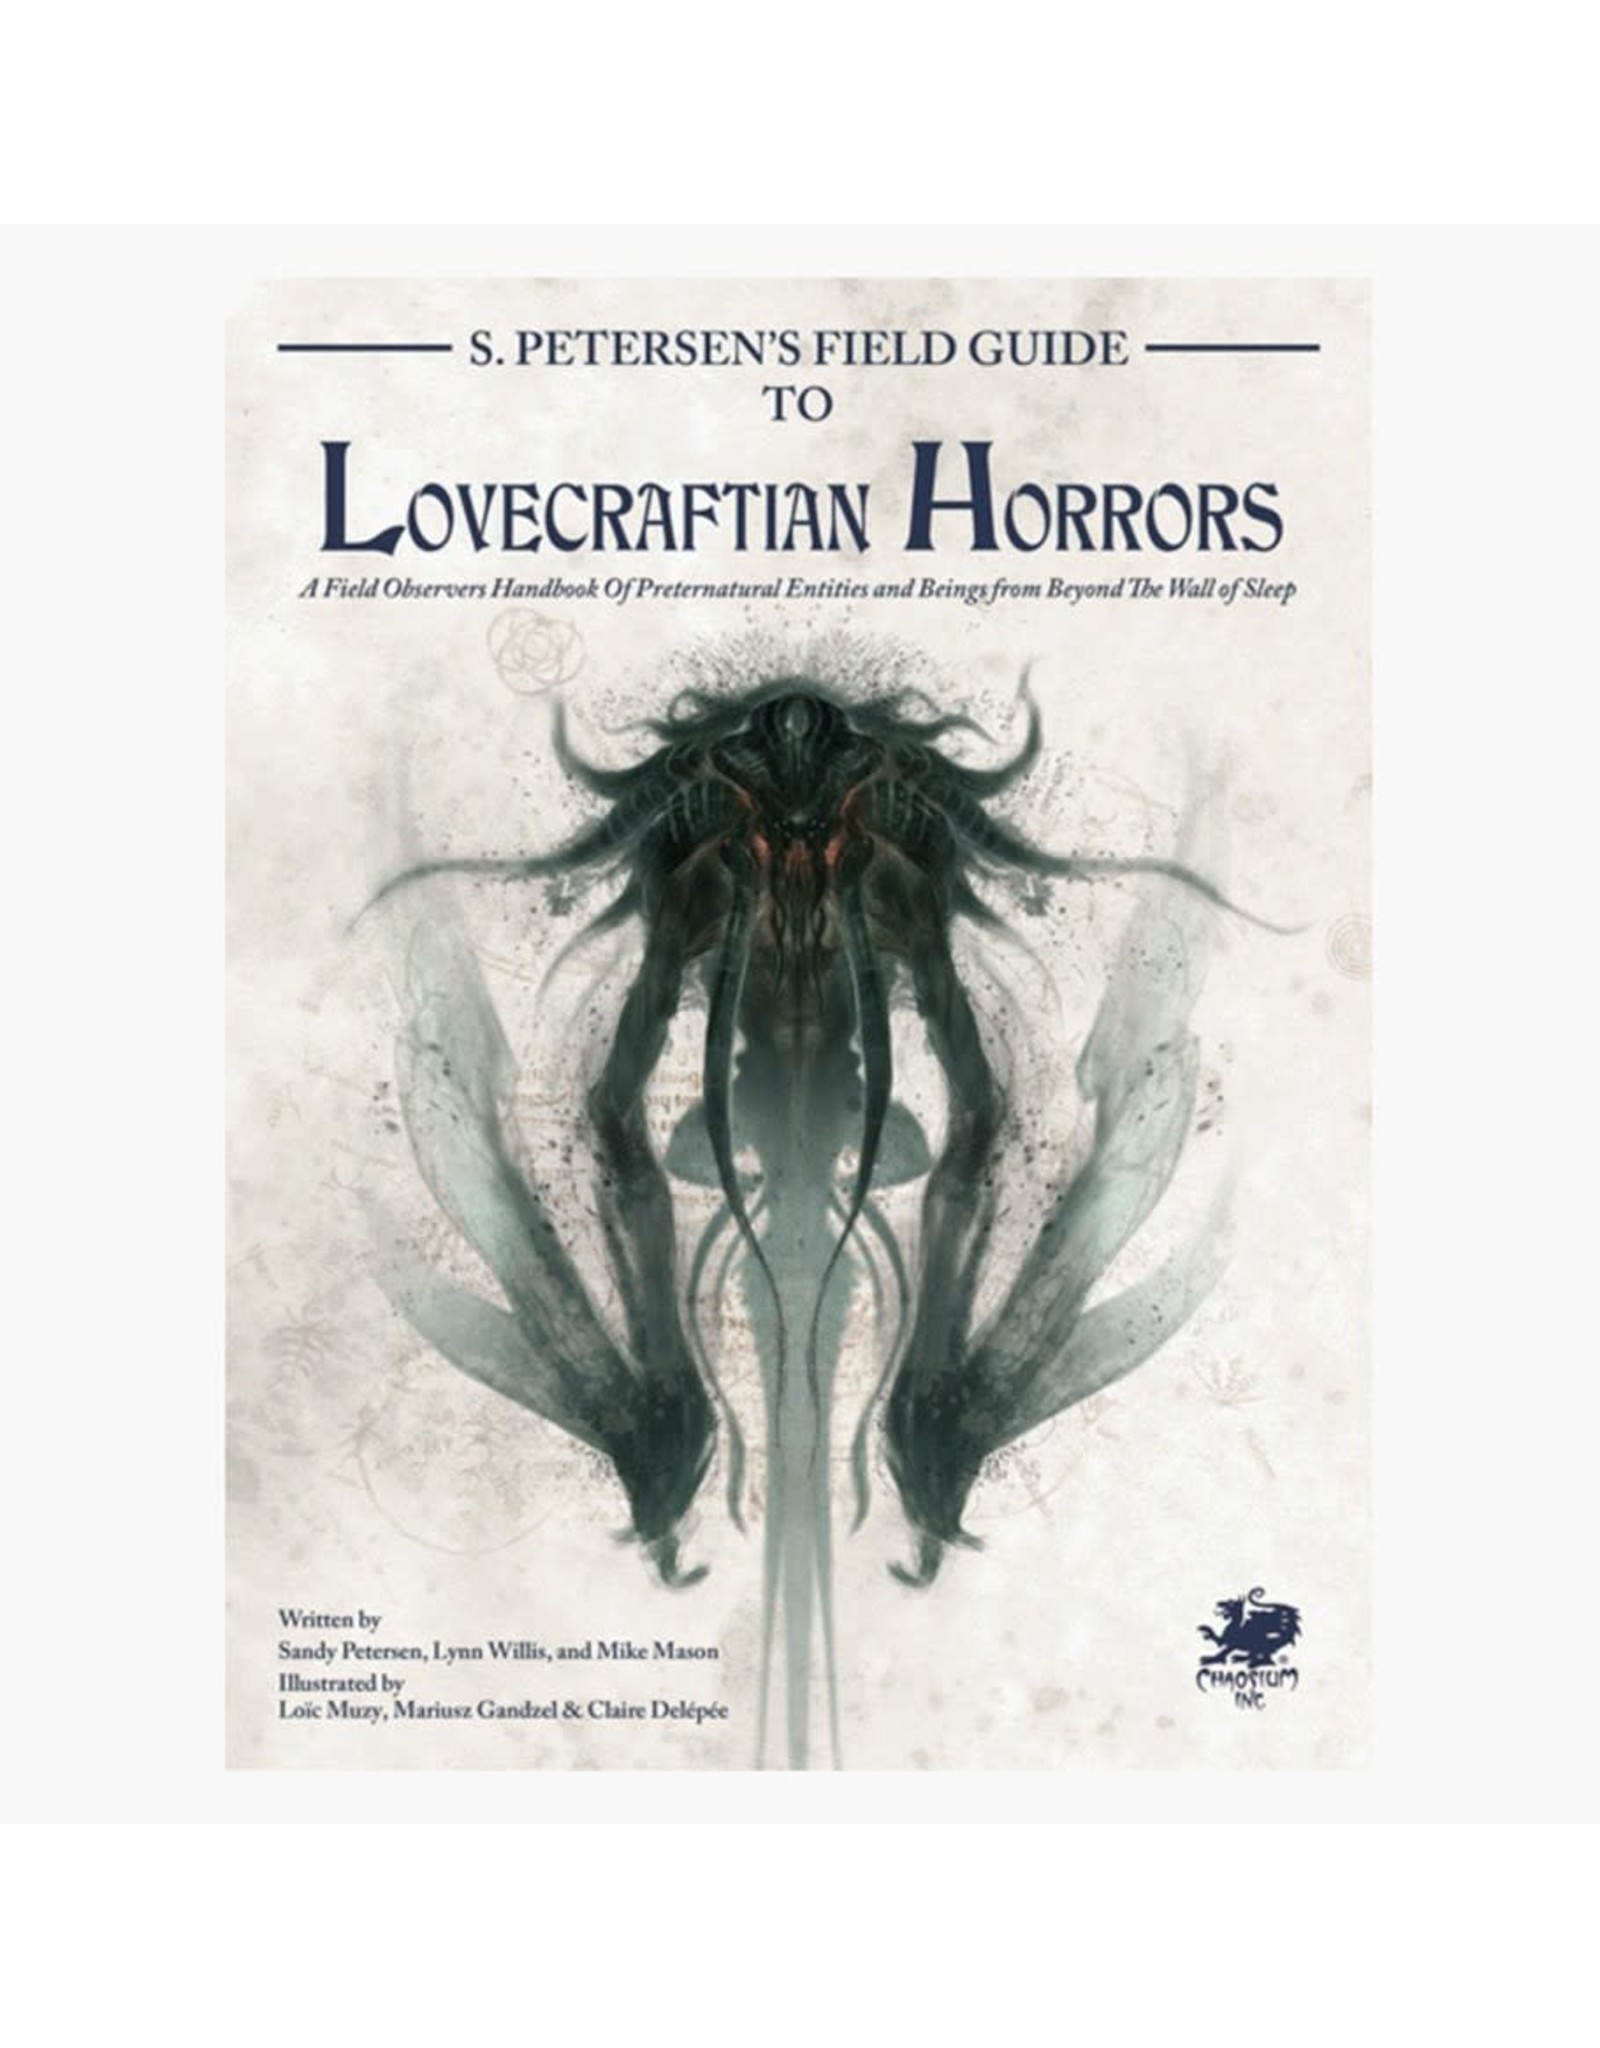 Chaosium  Inc. Call of Cthulhu: Field Guide to Lovecraftian Horrors Hardcover